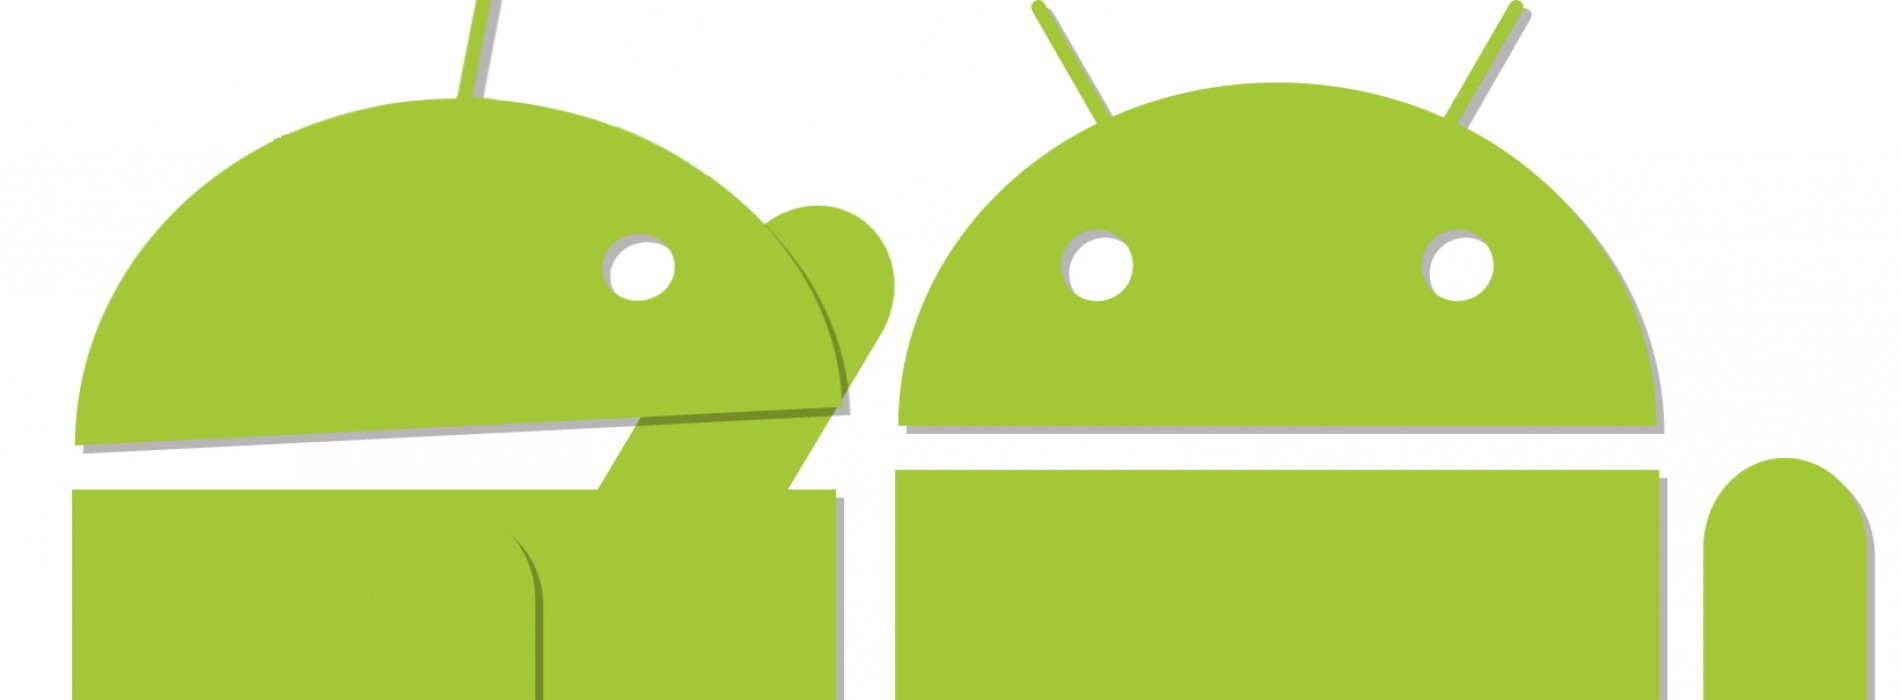 The week's best Android rumors: Nexus 8, Galaxy S5, Android 4.5, Xperia Tablet Z2, and more